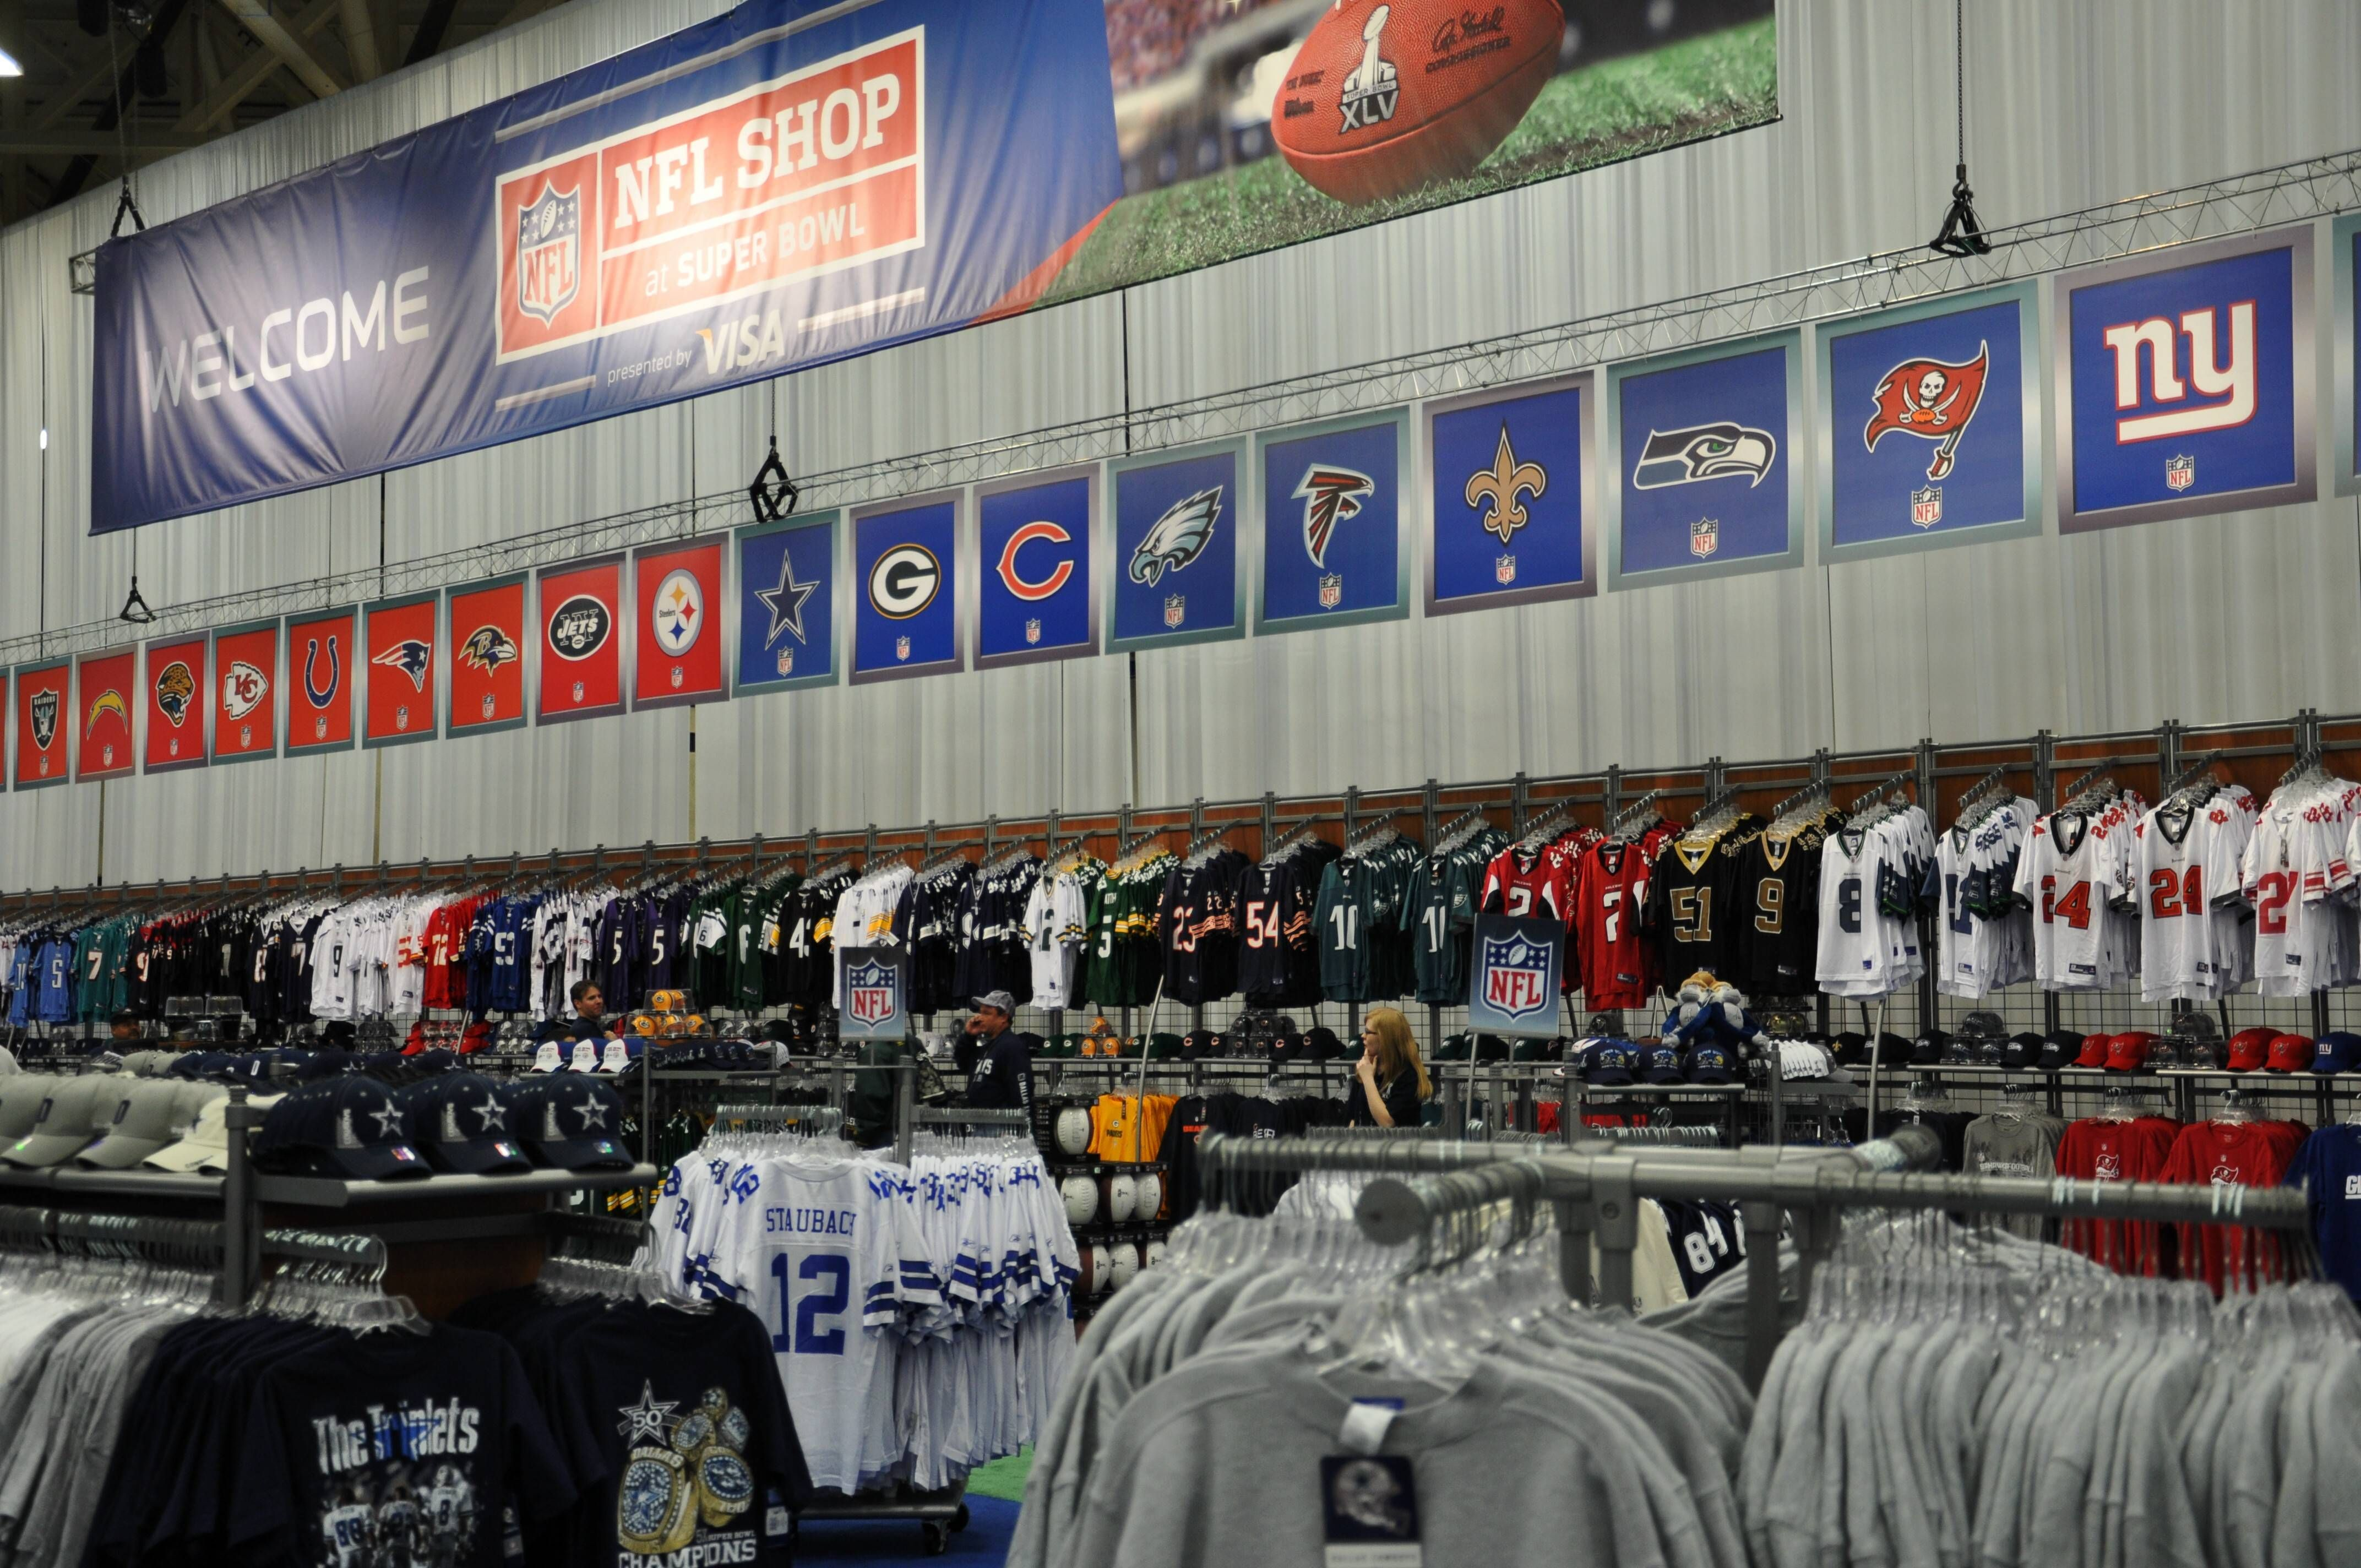 new arrival 89c11 e54ef NFL Experience | Sports Retail | Nfl shop, Nfl, Broadway shows